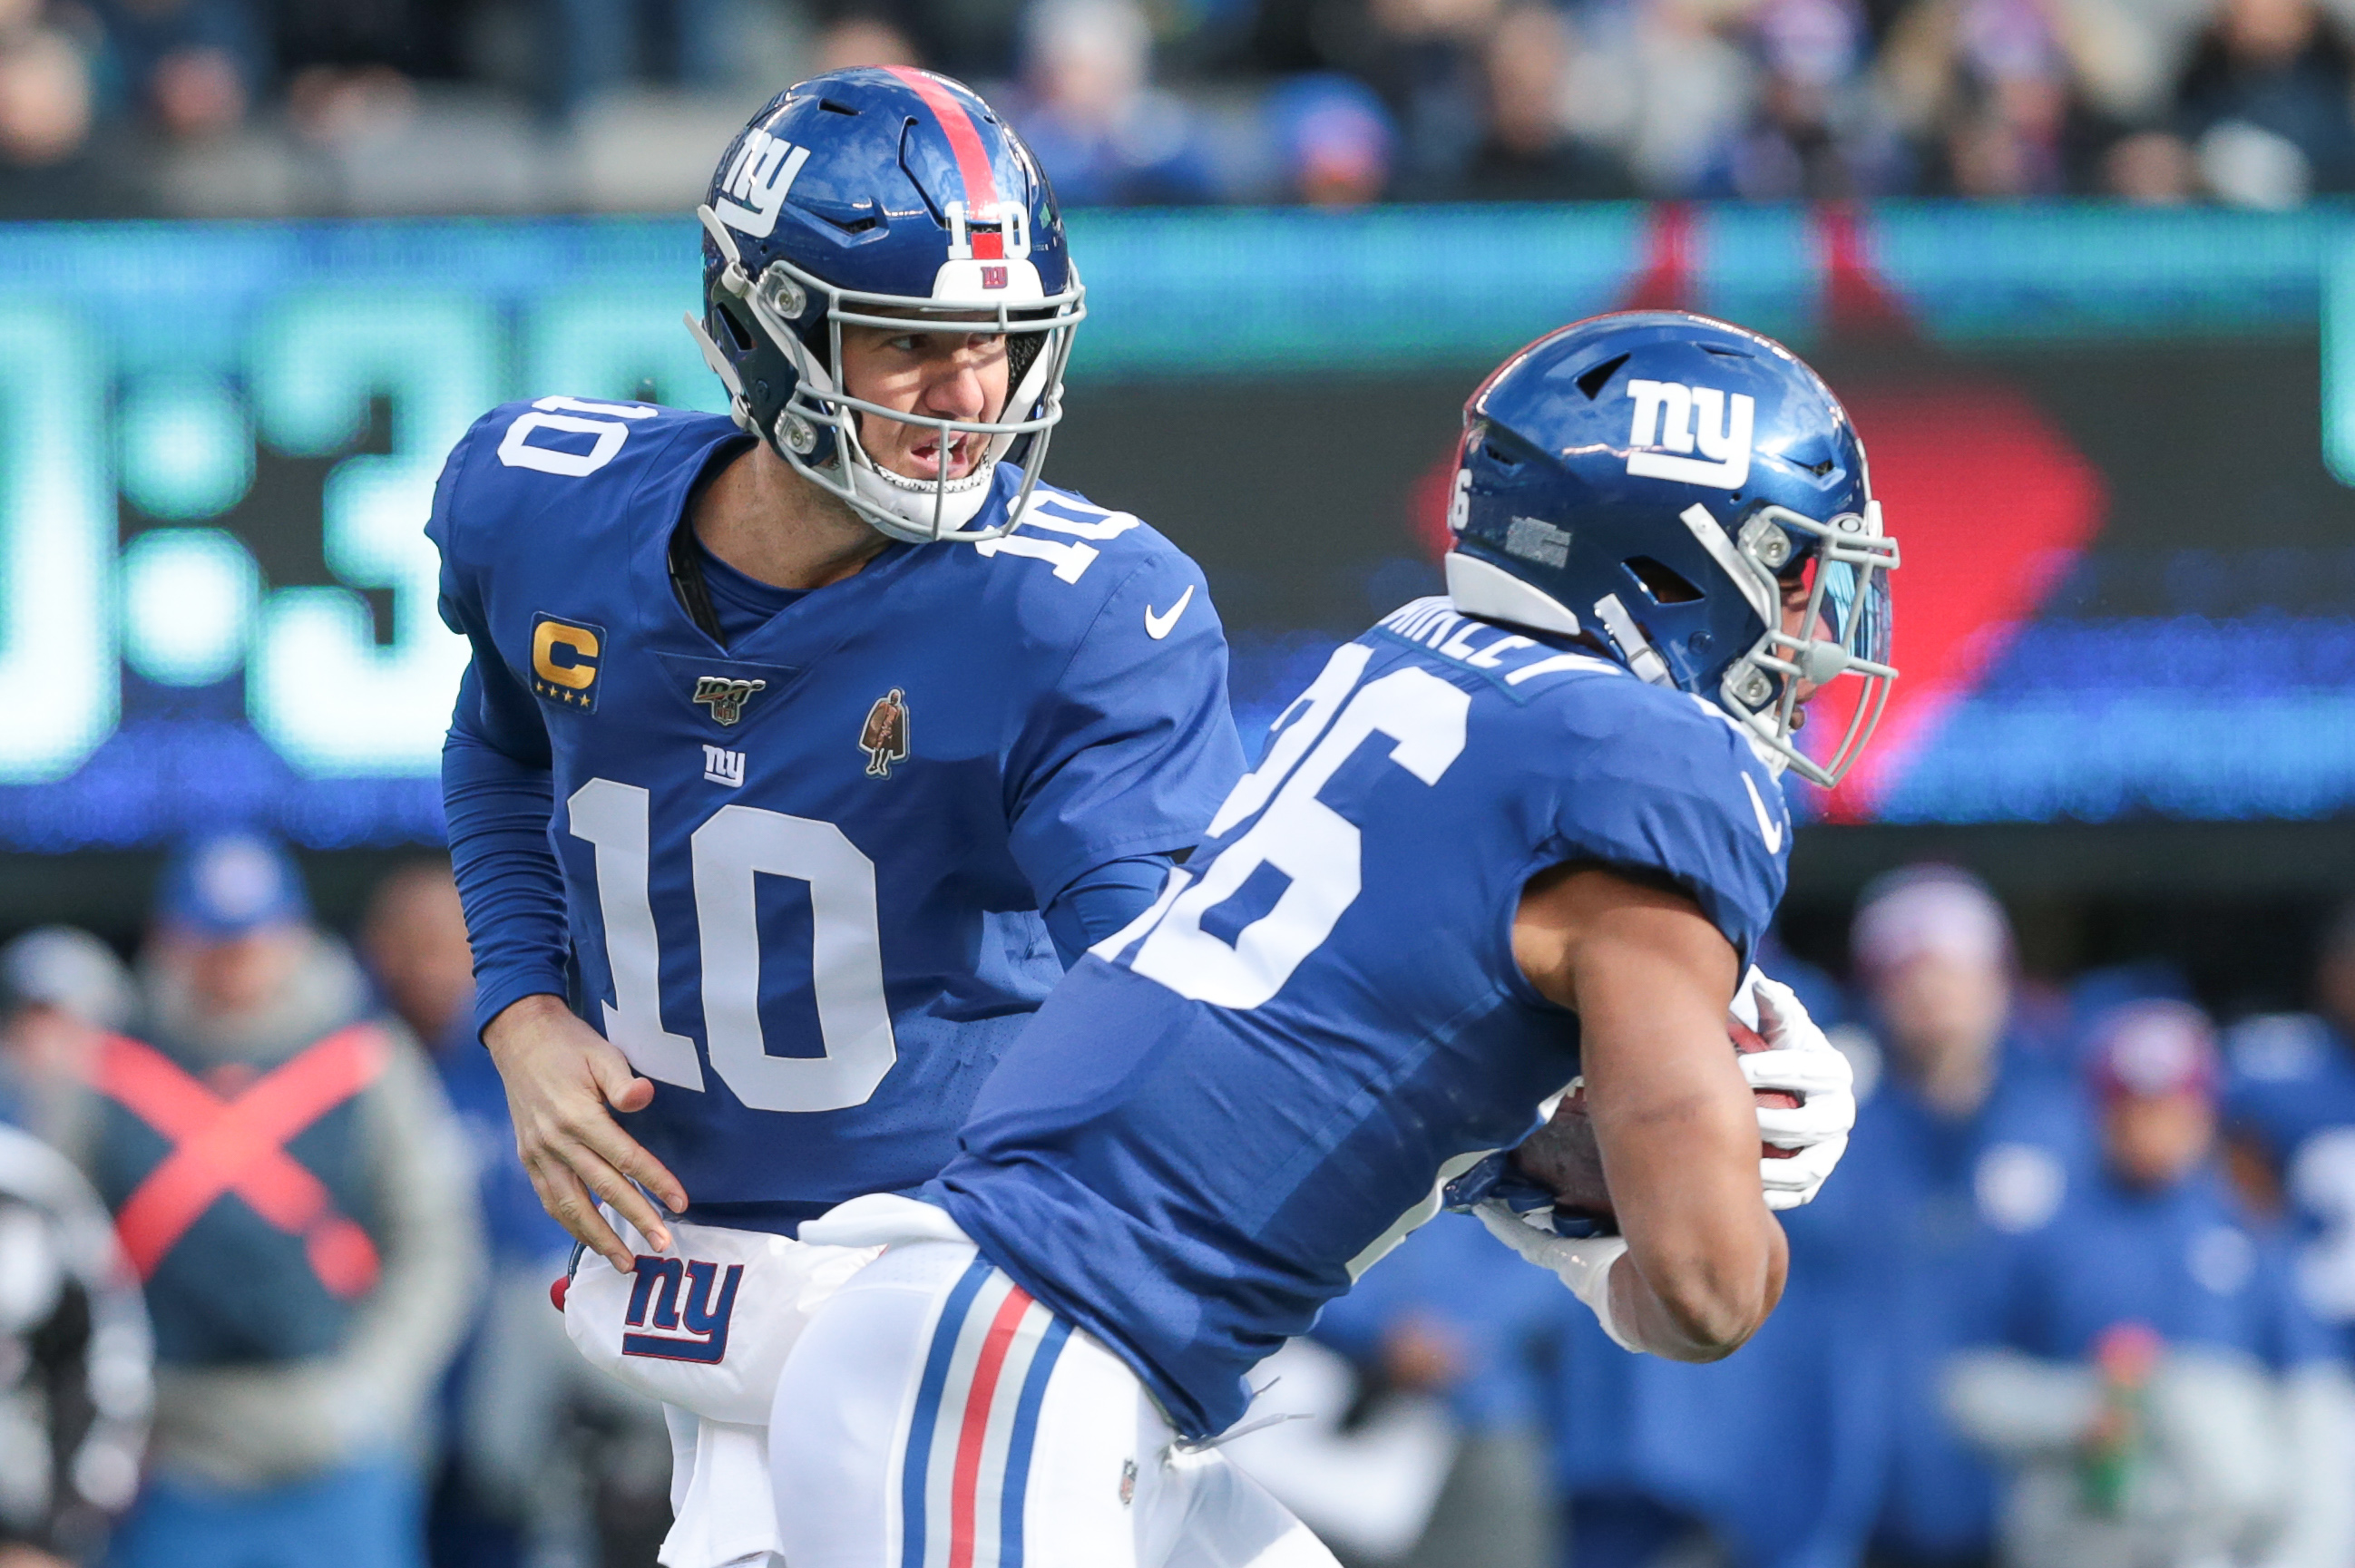 New York Giants quarterback Eli Manning hands off to running back Saquon Barkley during the first quarter against the Miami Dolphins at MetLife Stadium.